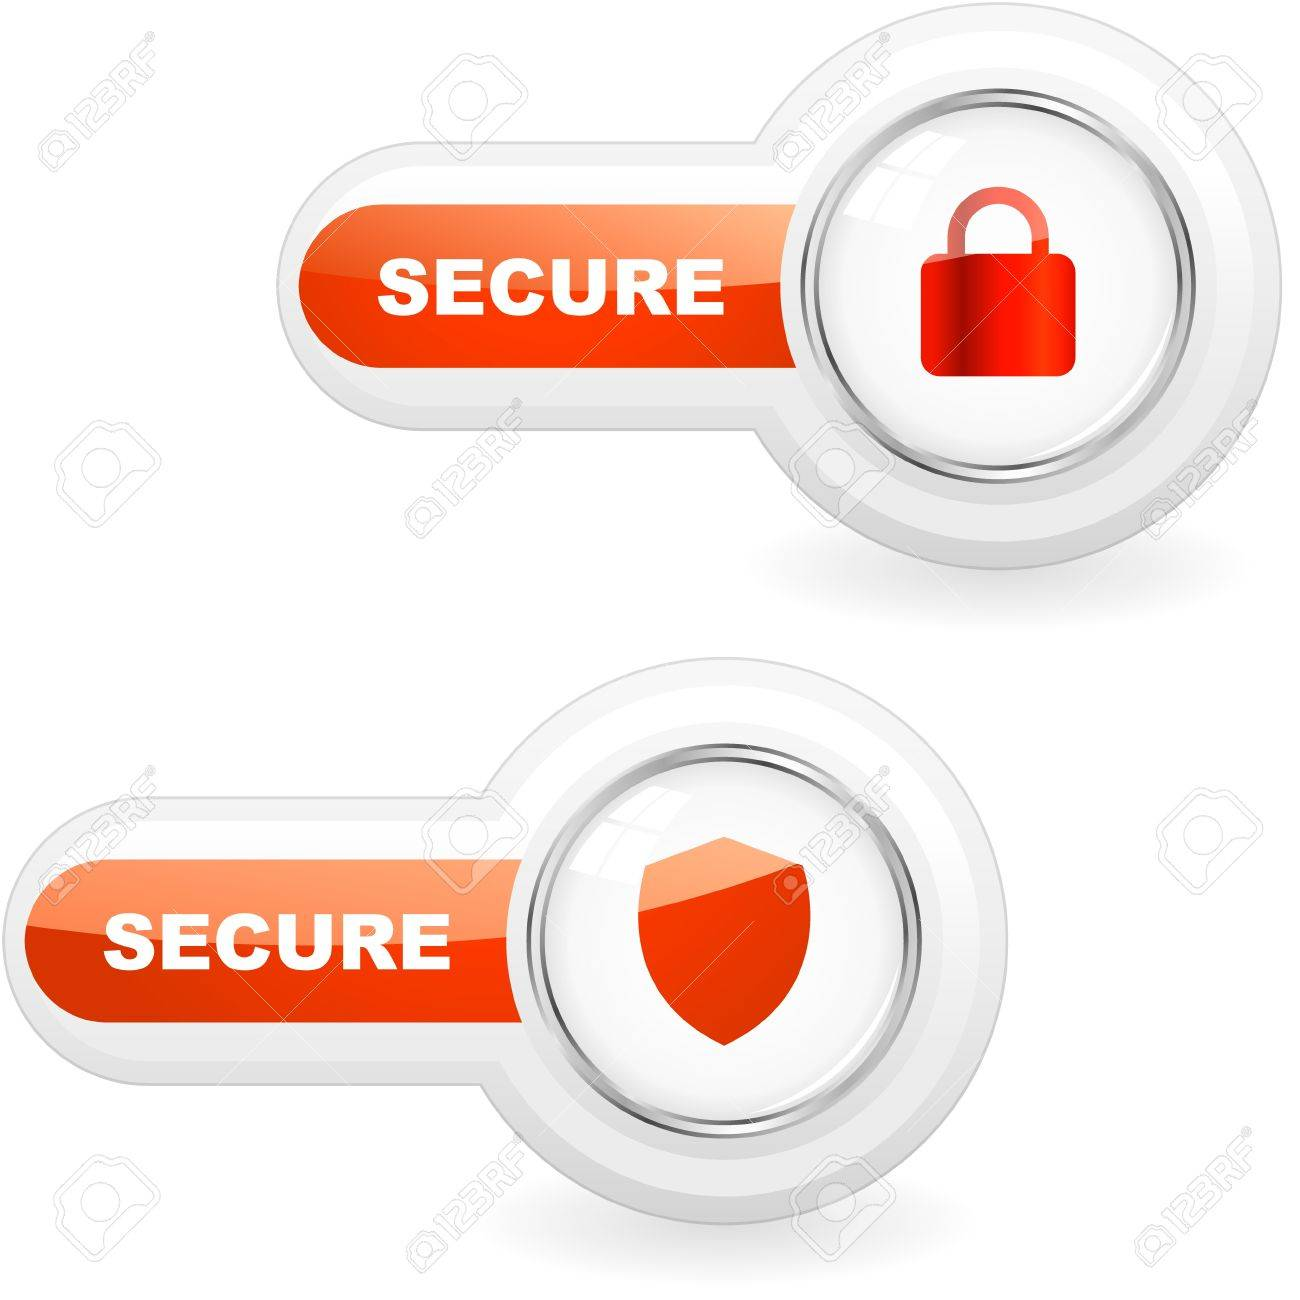 SECURE. Vector illustration. Stock Vector - 11269227